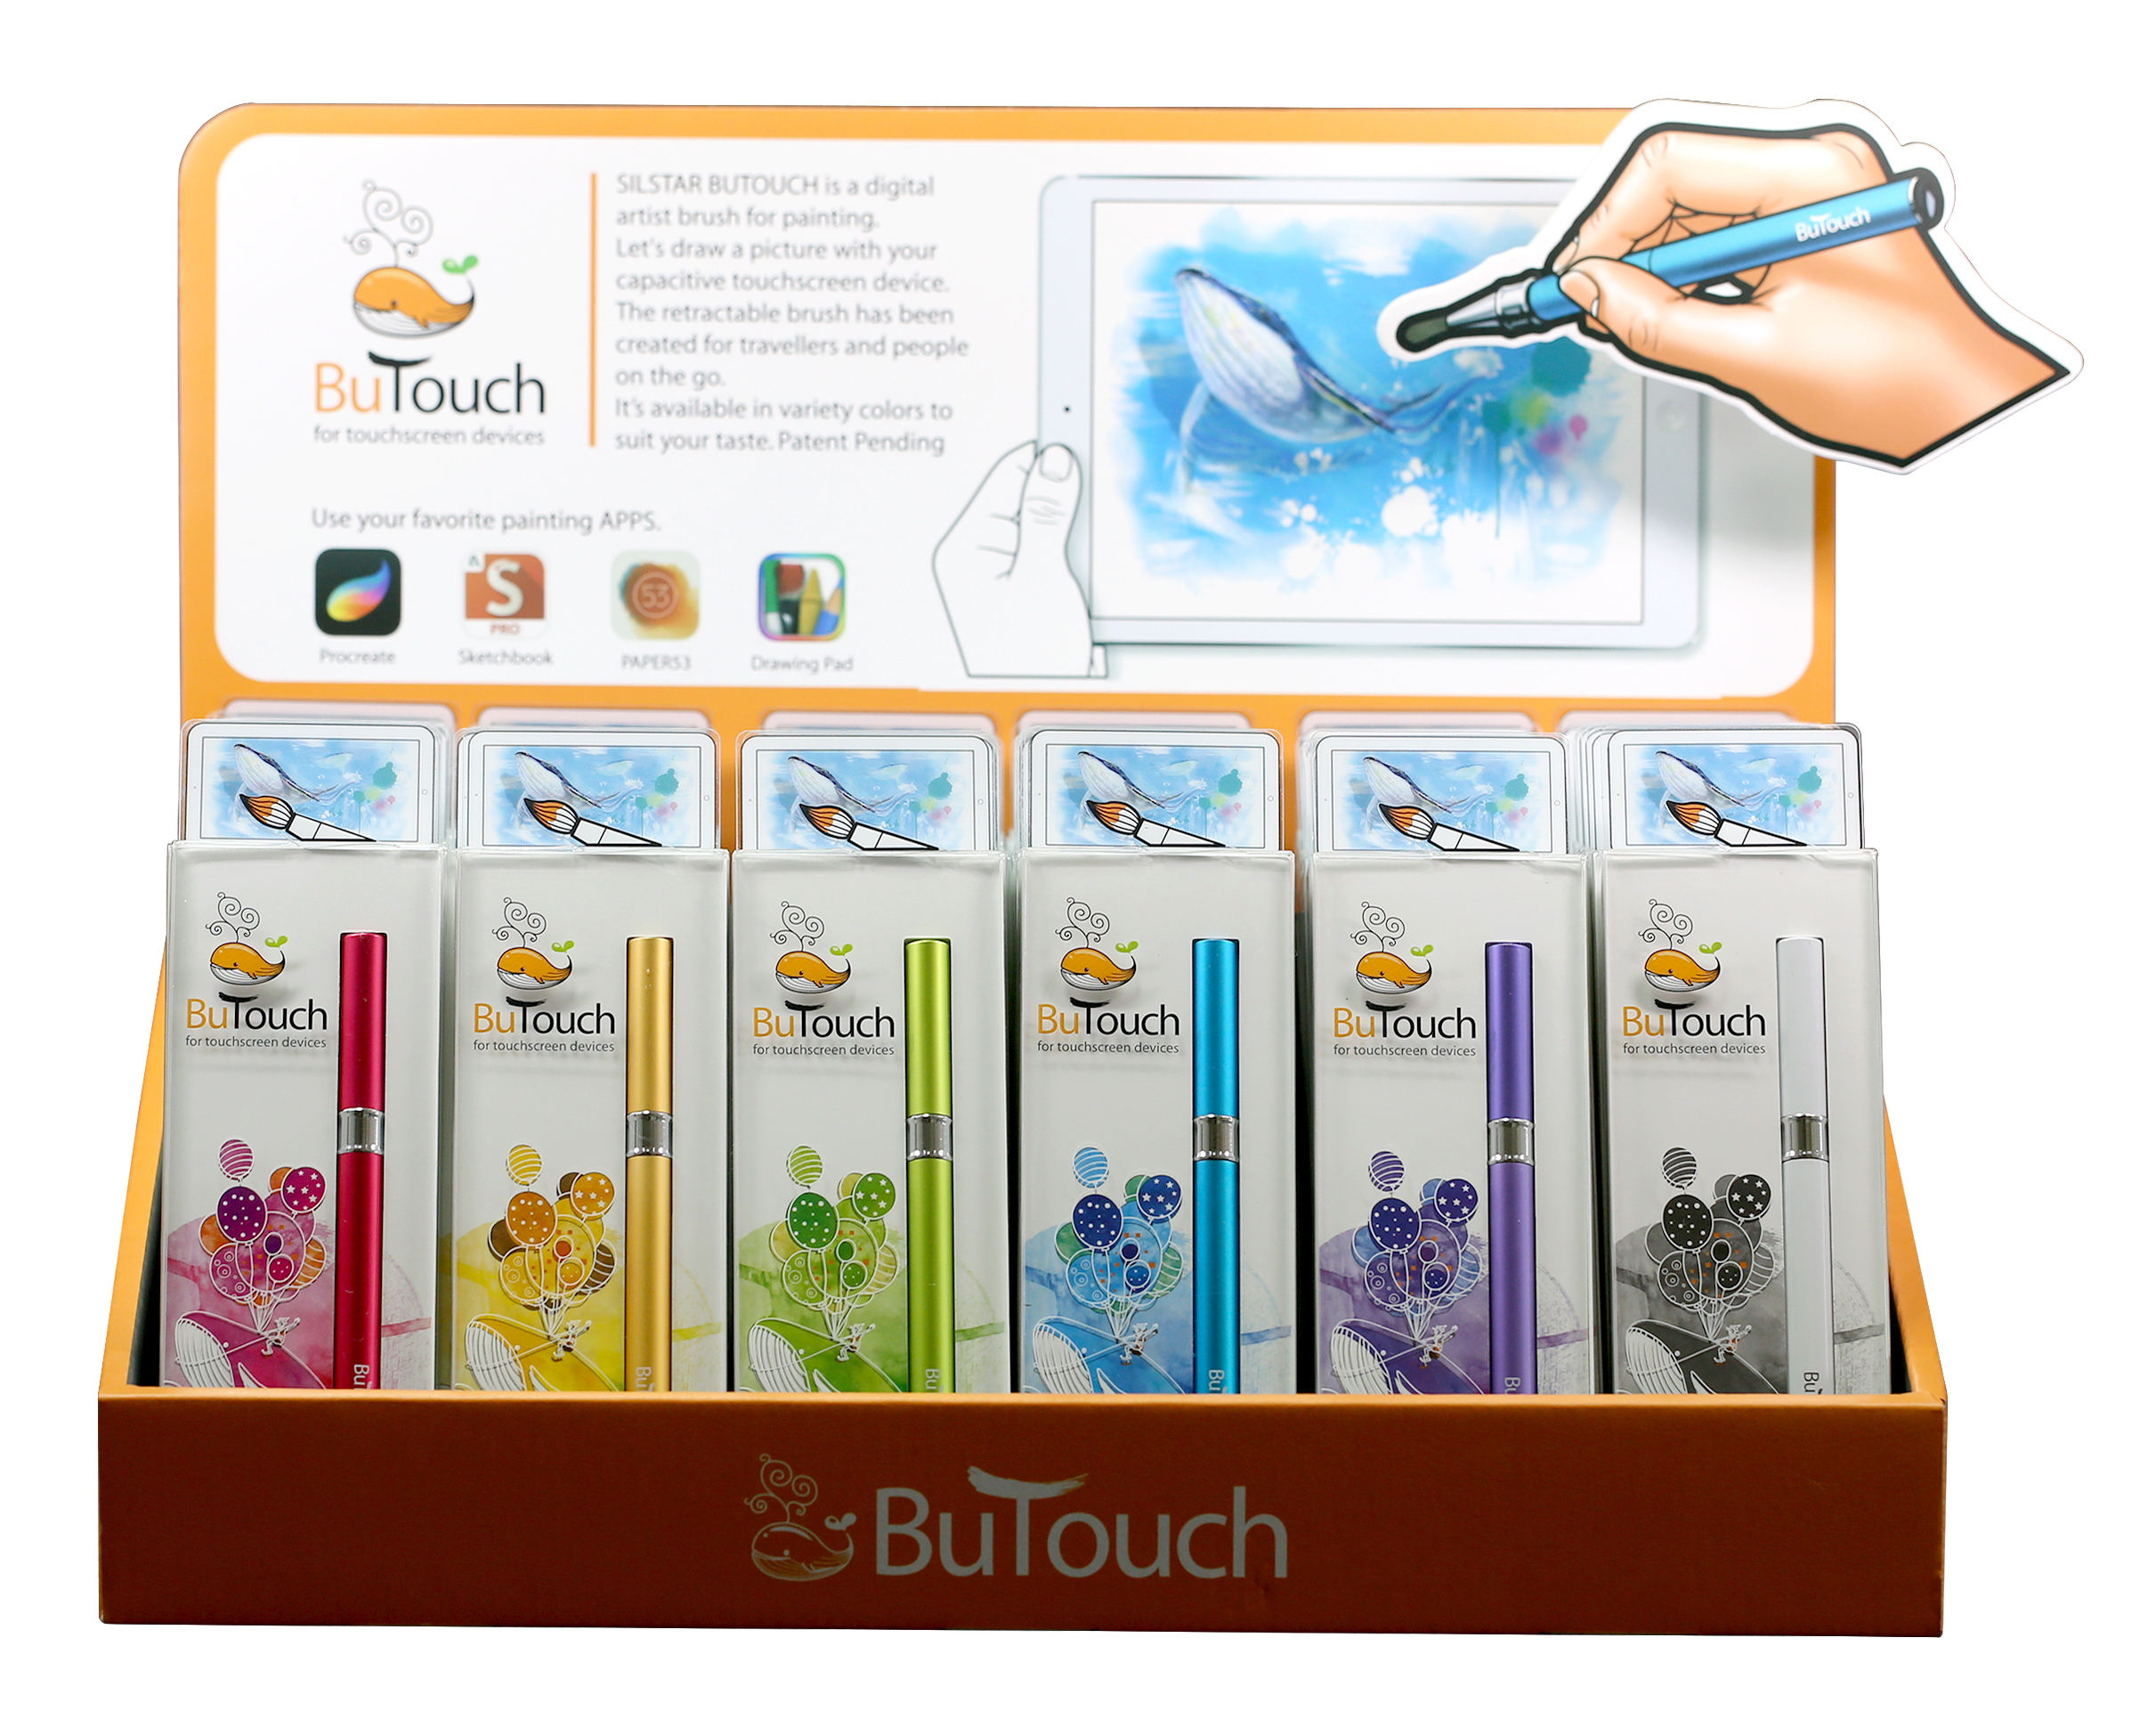 Butouch_Box